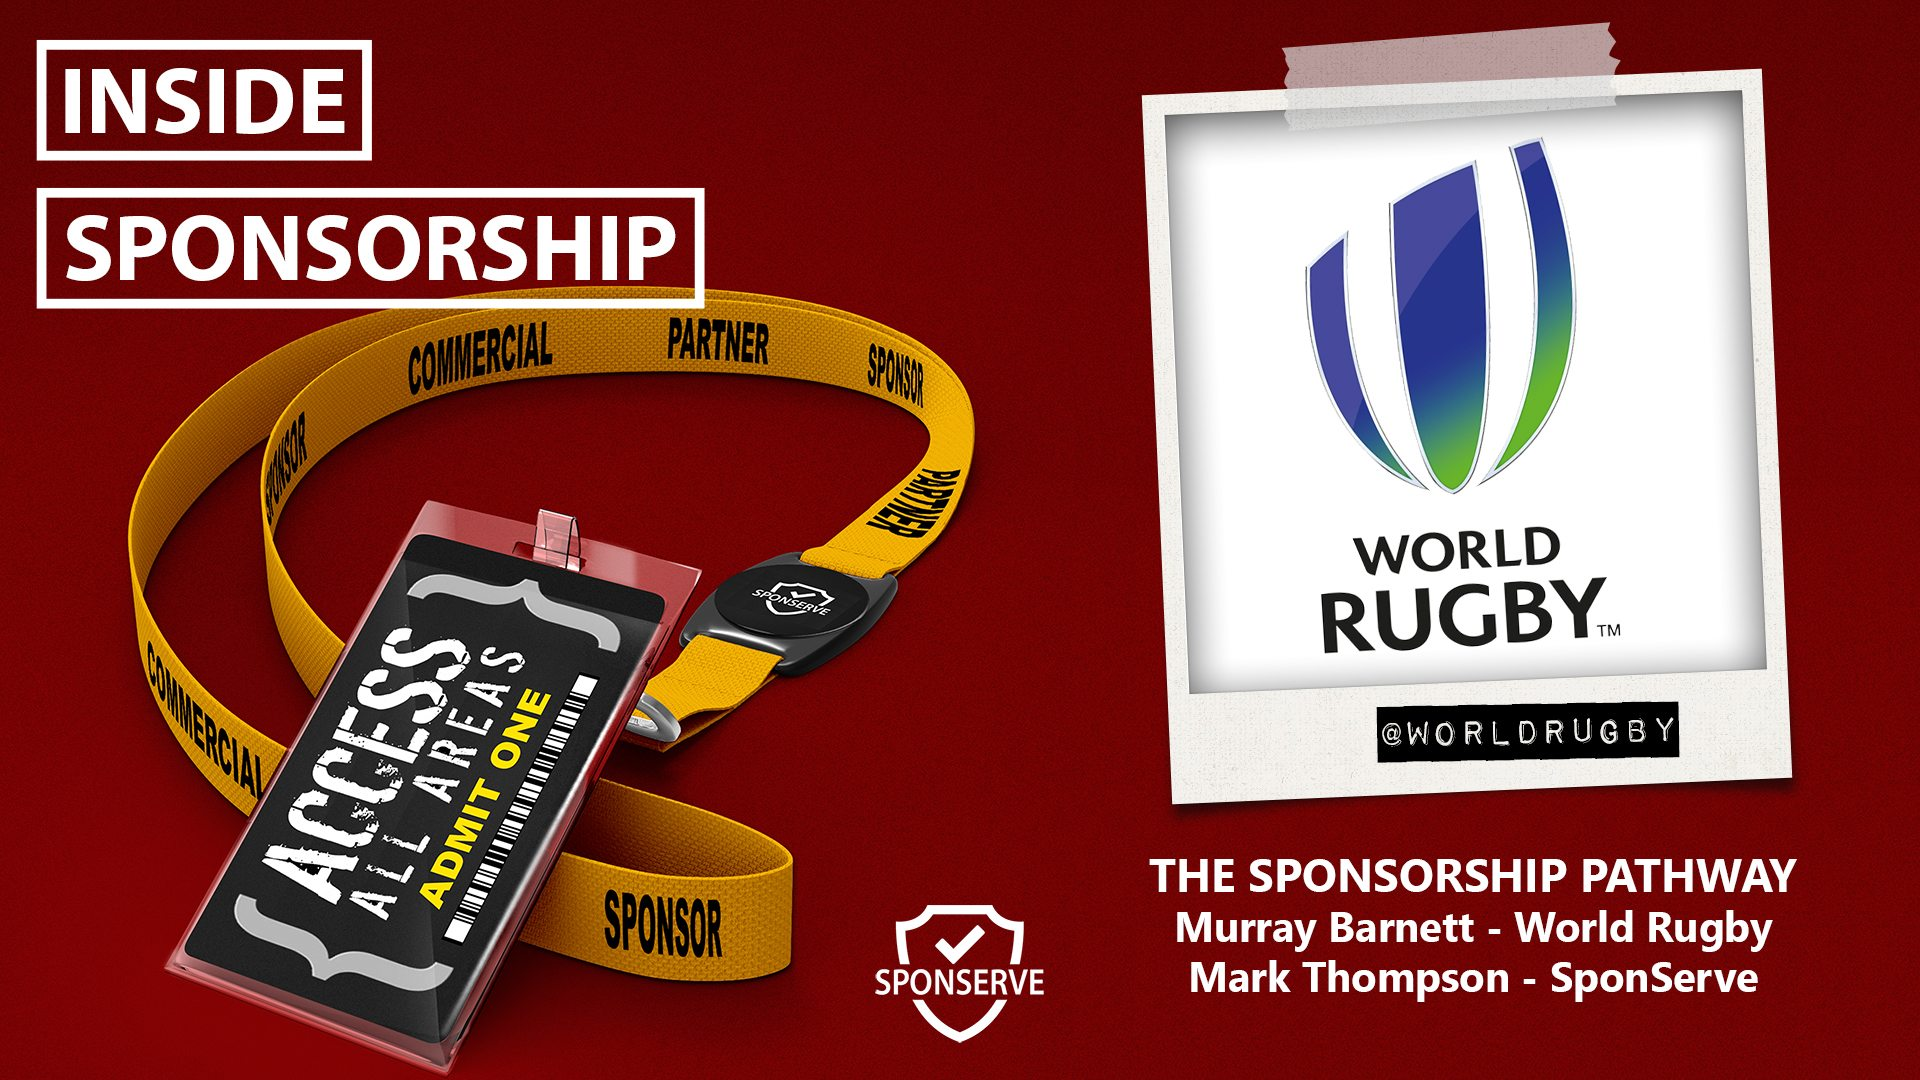 INSIDE SPONSORSHIP WORLD RUGBY SPECIAL MURRAY BARNETT WORLD RUGBY AND MARK THOMPSON SPONSERVE